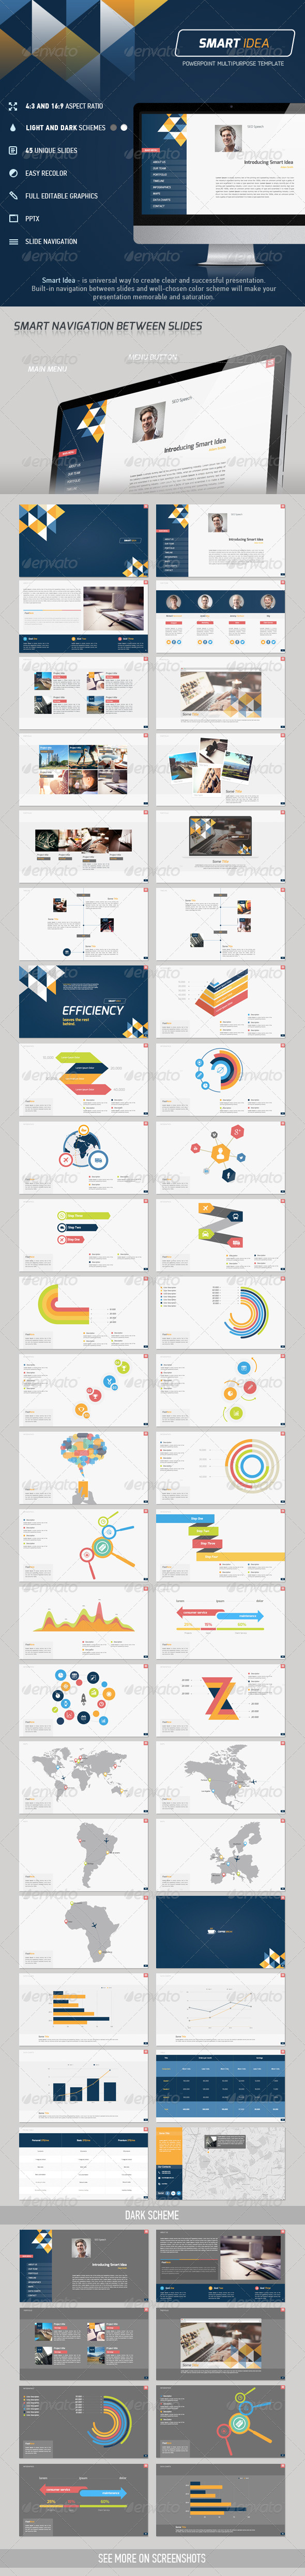 GraphicRiver Smart Idea PowerPoint Template 8003147